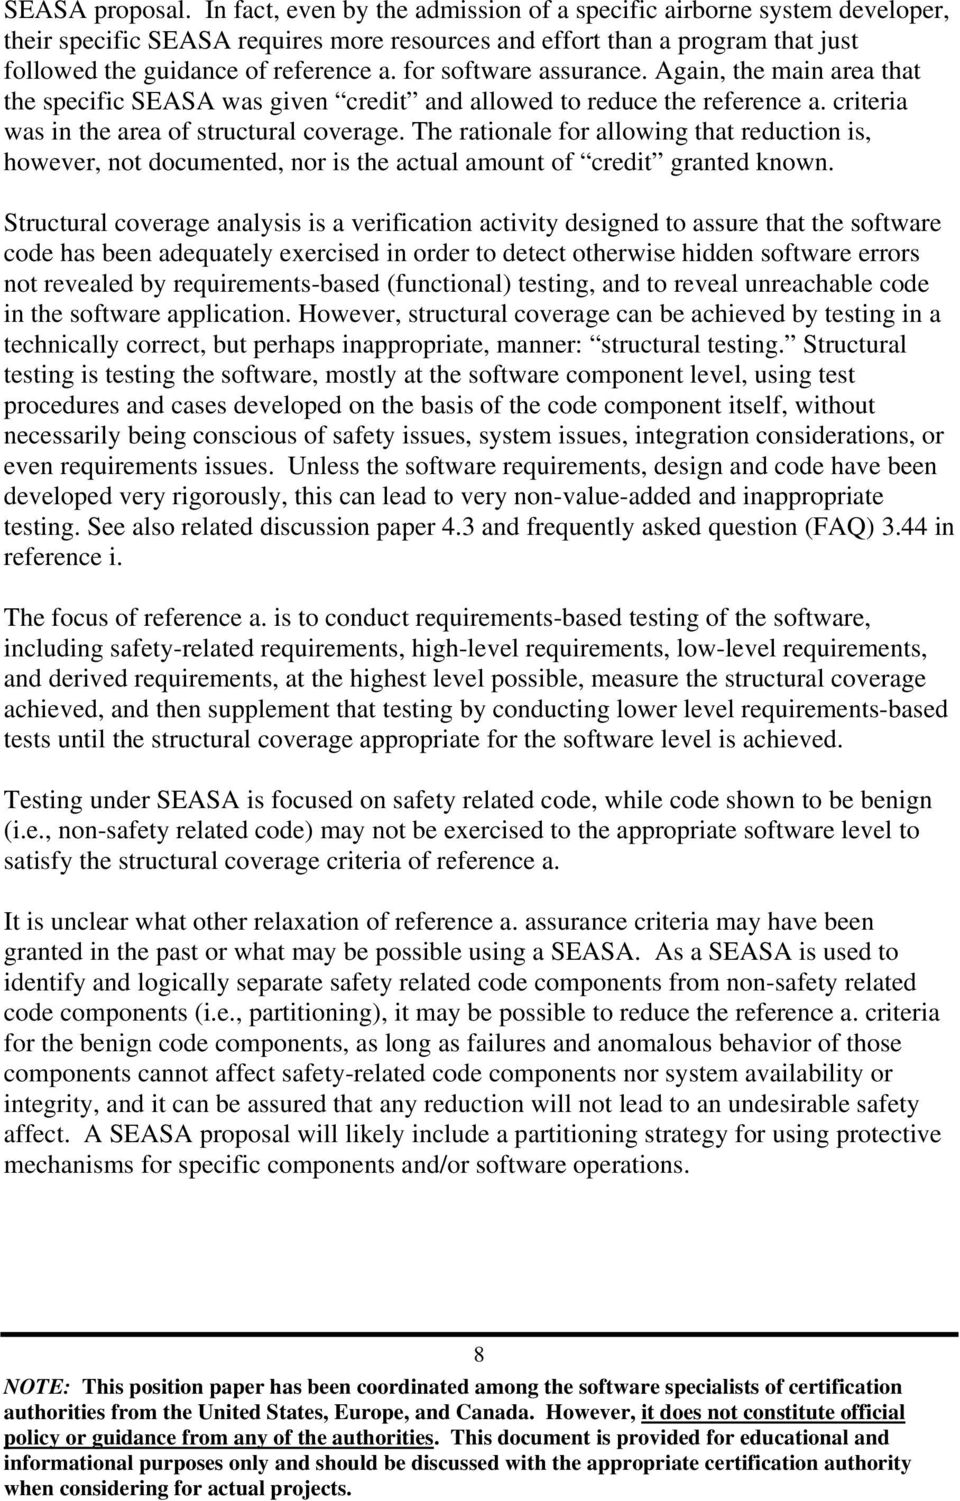 for software assurance. Again, the main area that the specific SEASA was given credit and allowed to reduce the reference a. criteria was in the area of structural coverage.